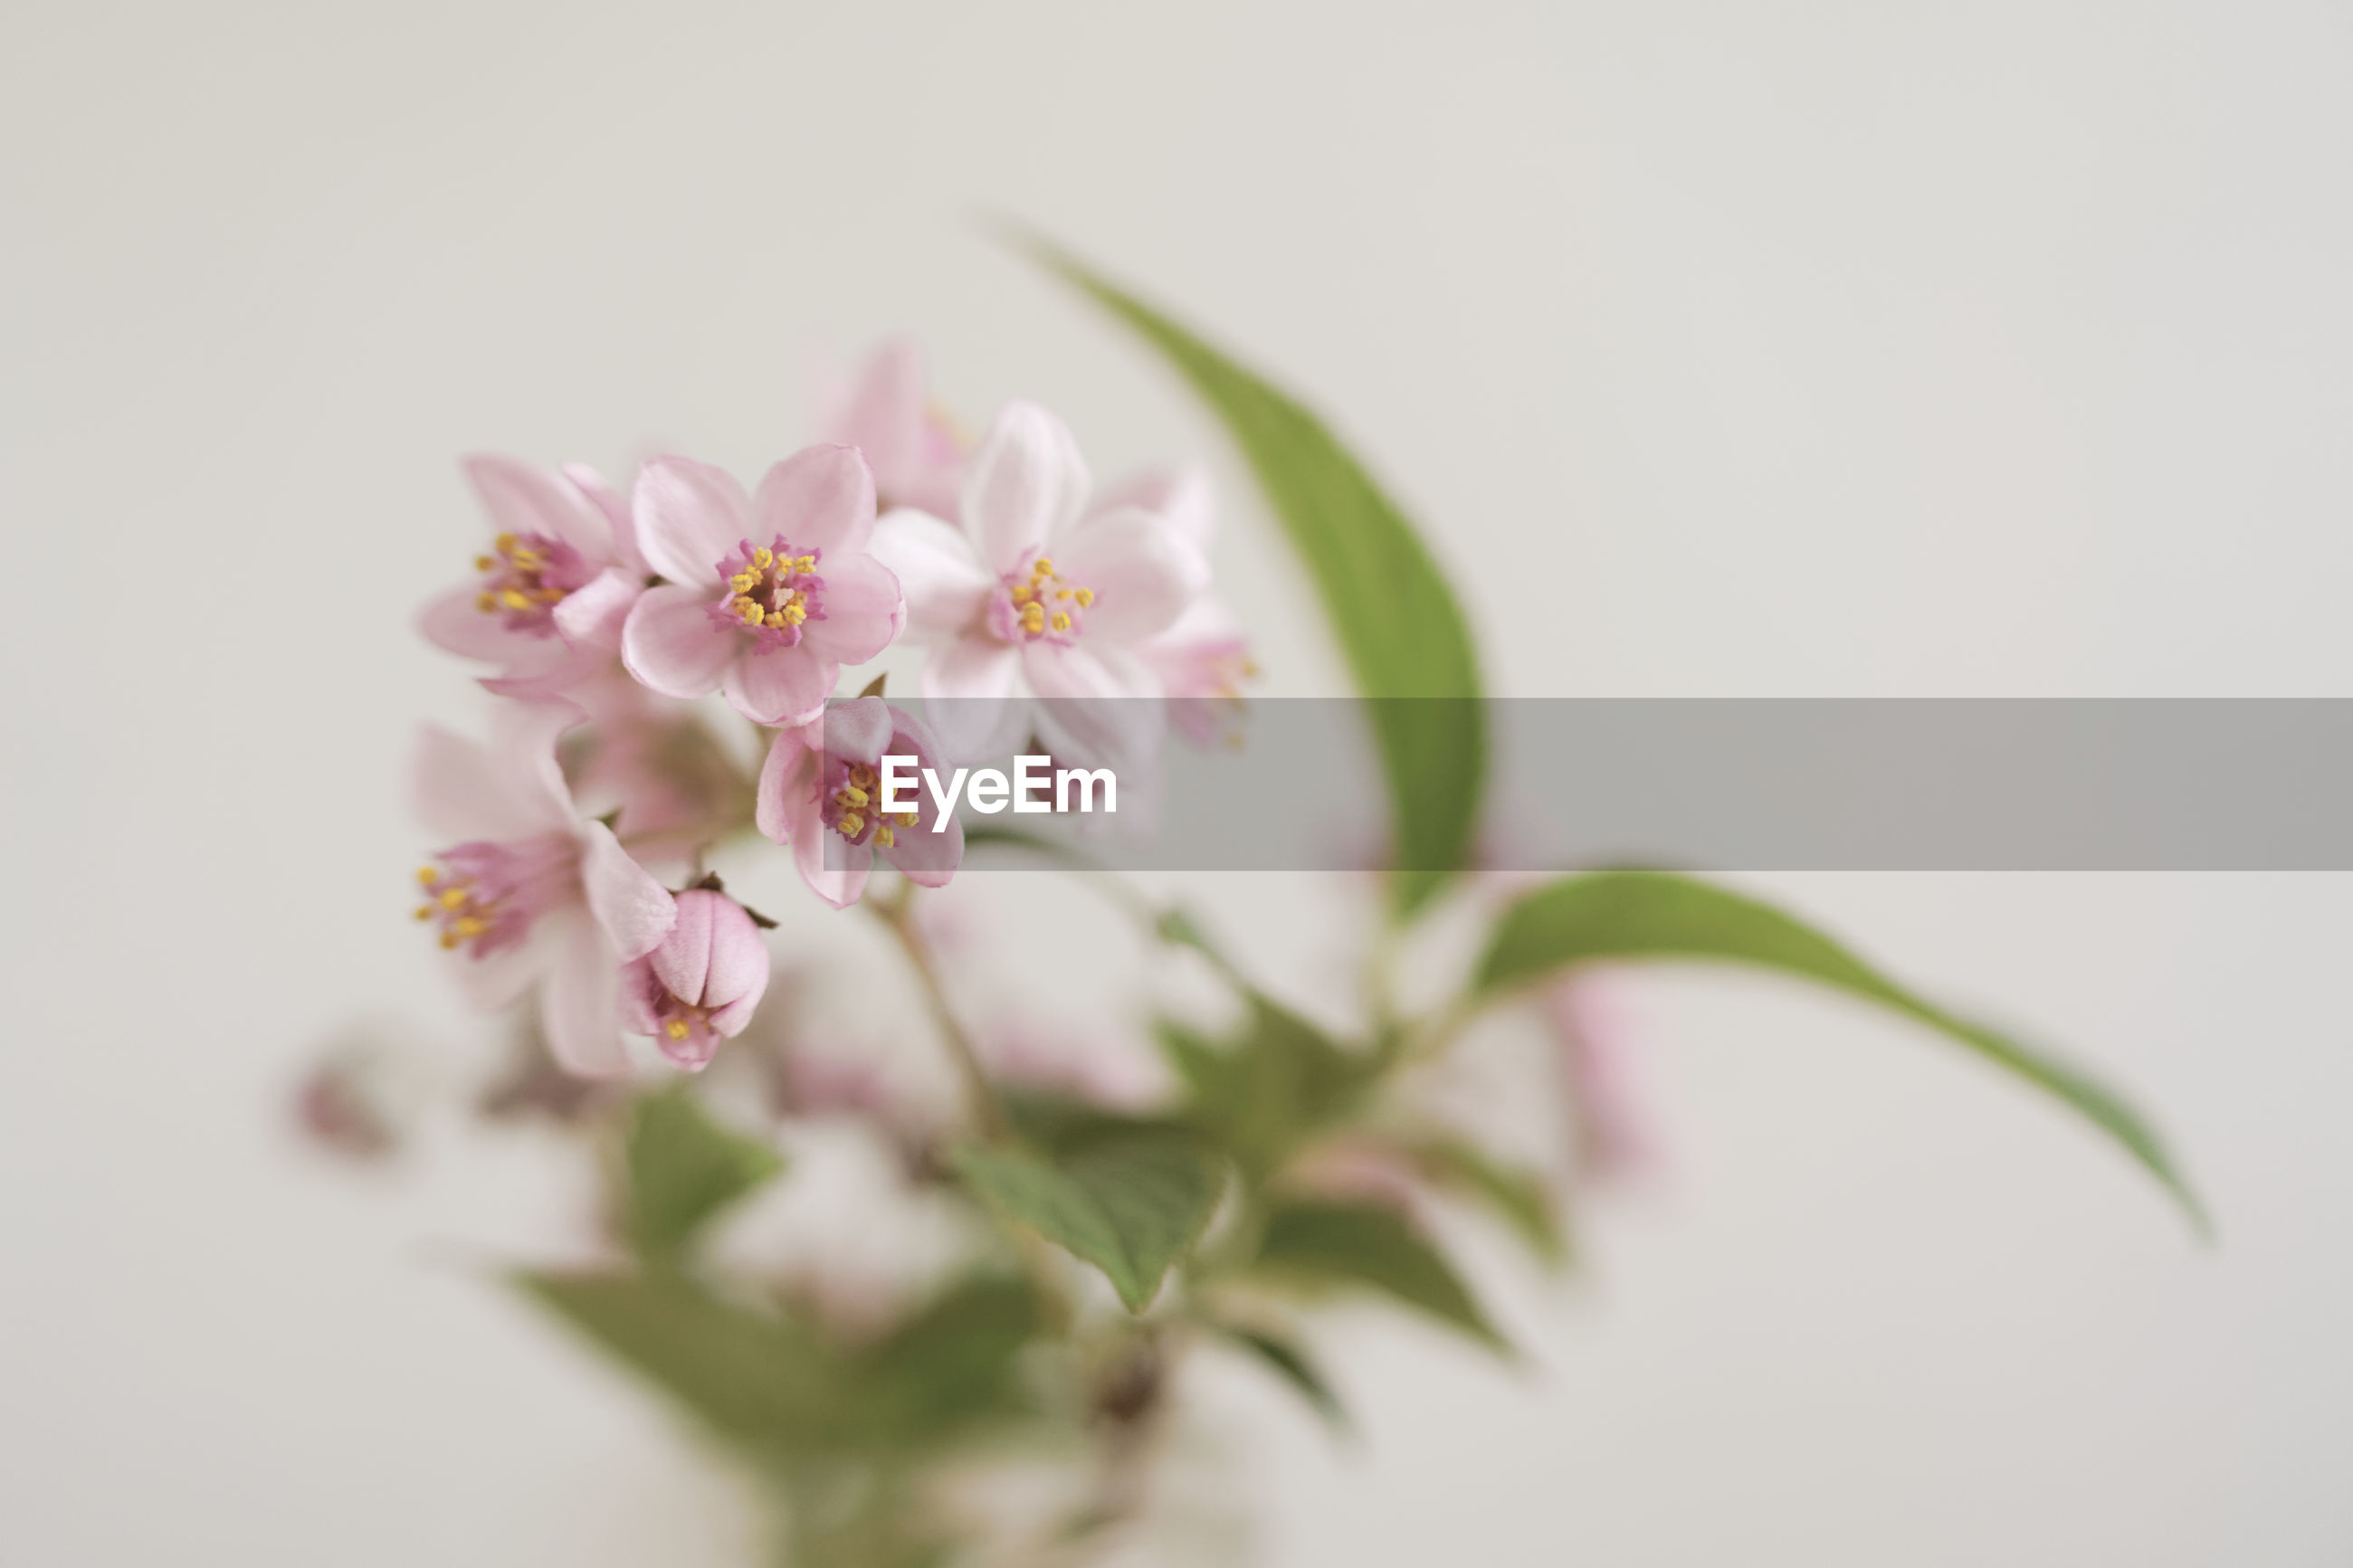 CLOSE-UP OF PINK CHERRY BLOSSOMS AGAINST WHITE BACKGROUND